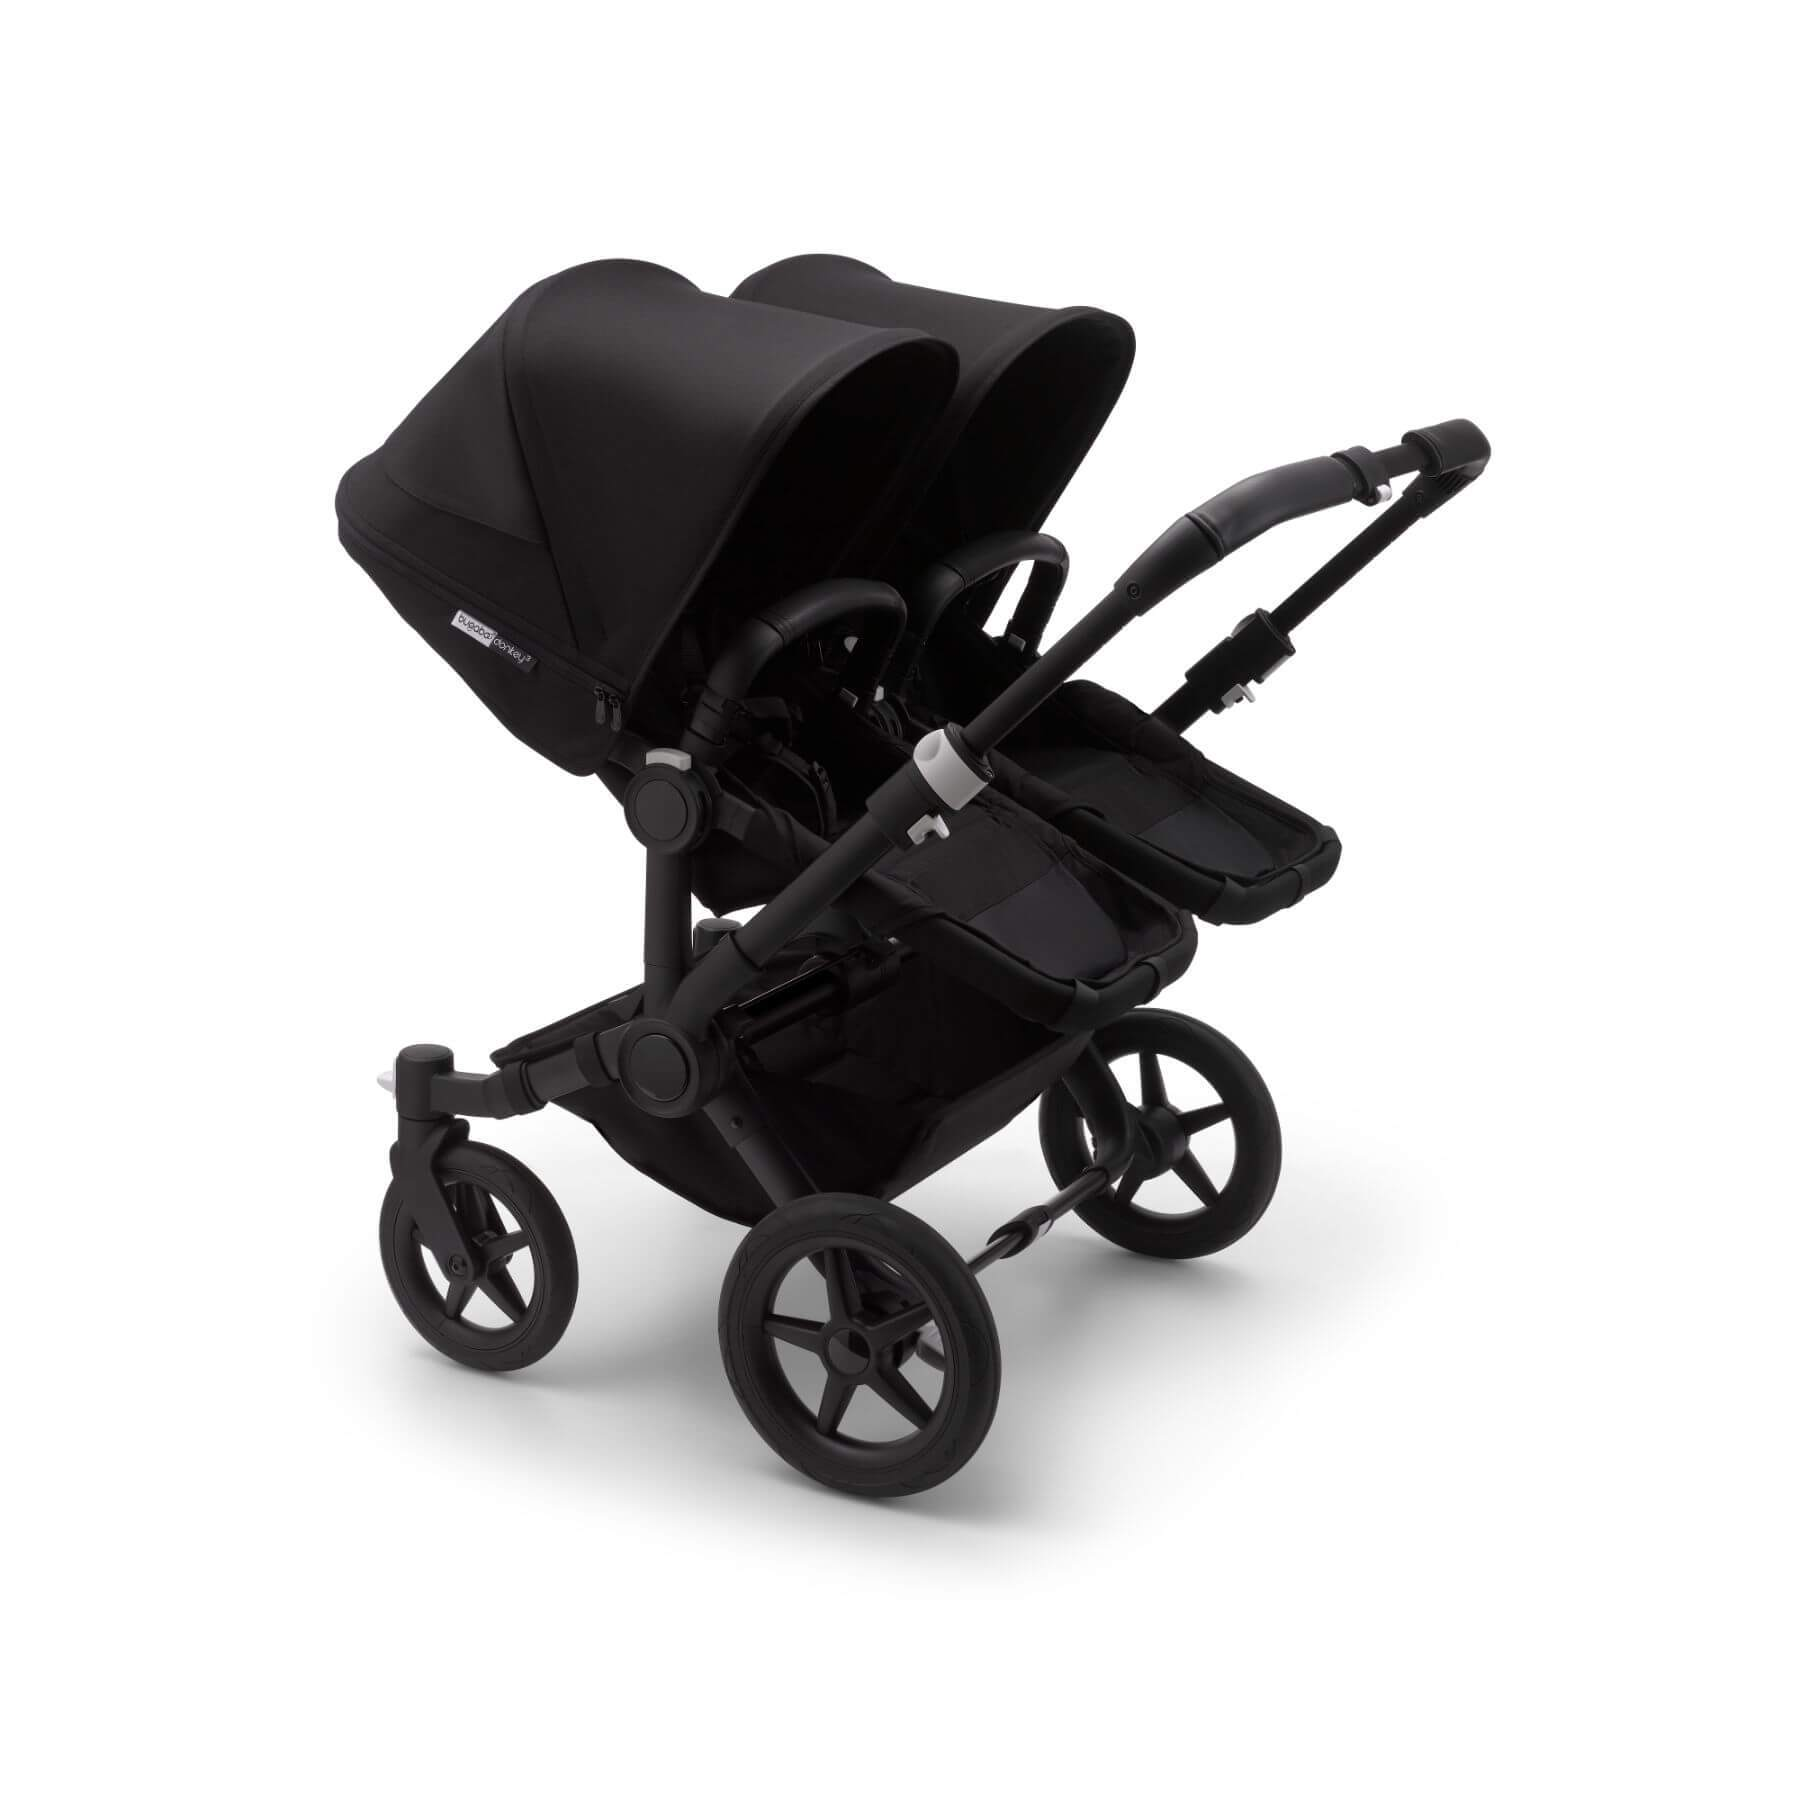 Bugaboo Donkey 3 Twin - Black chassis